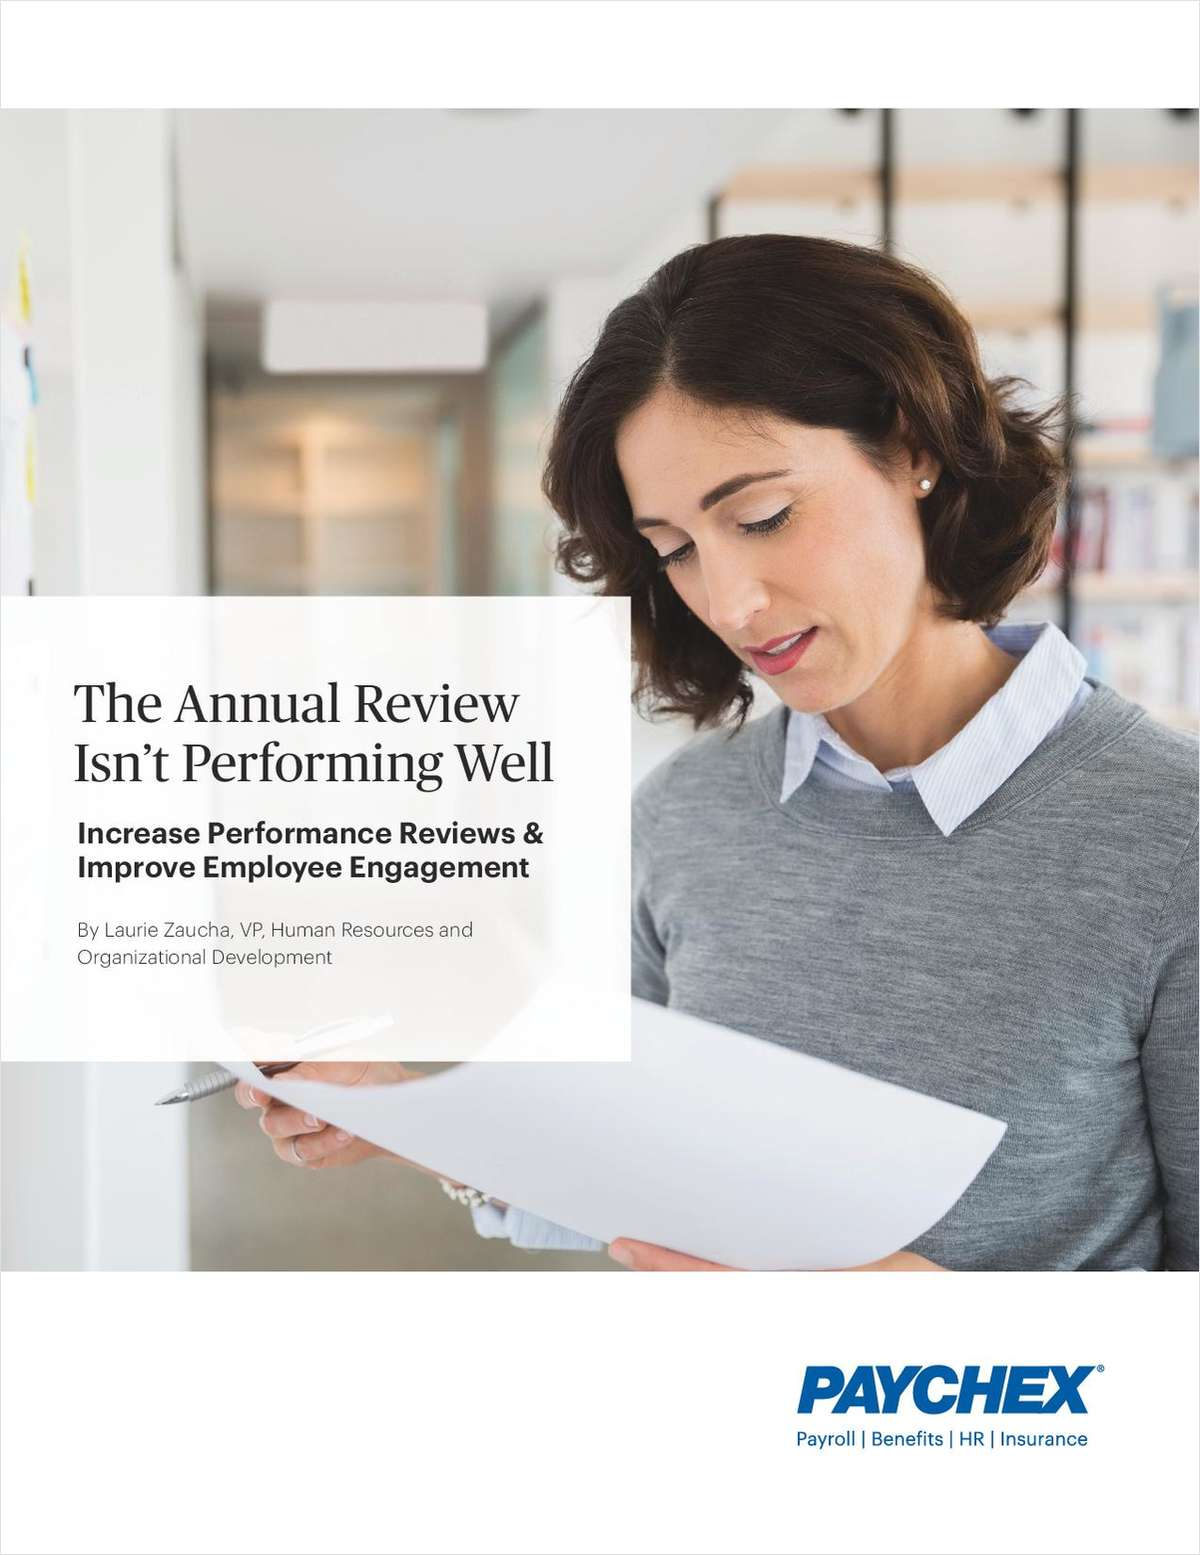 Revamp Employee Reviews and Boost Performance